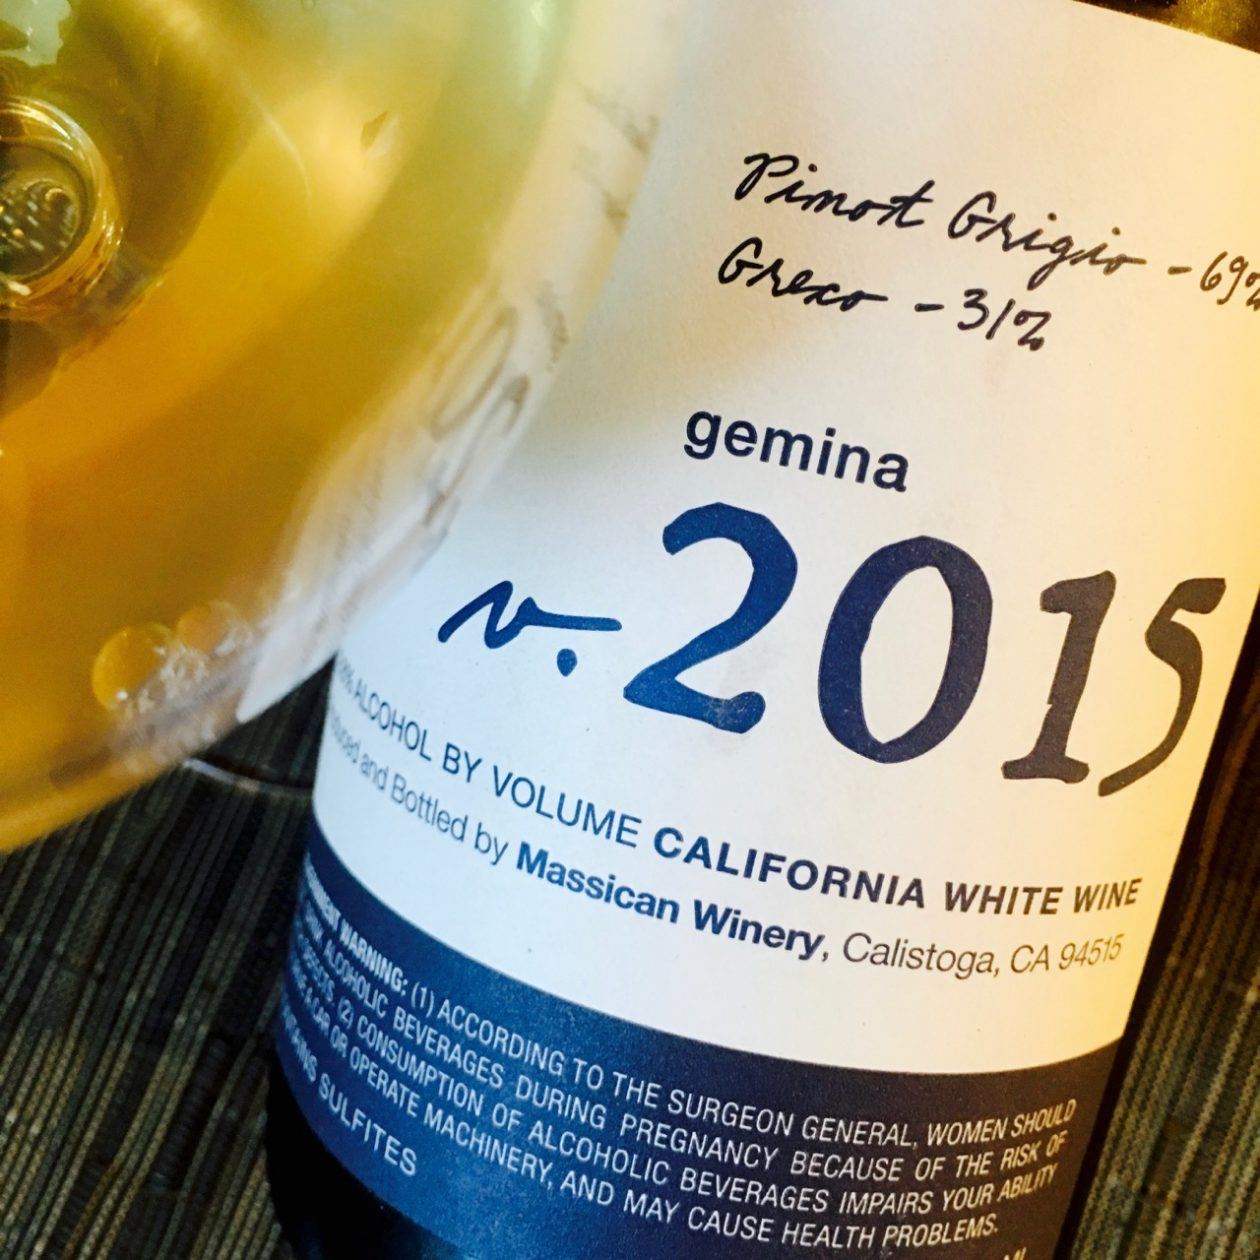 2015 Massican White Blend Gemina California